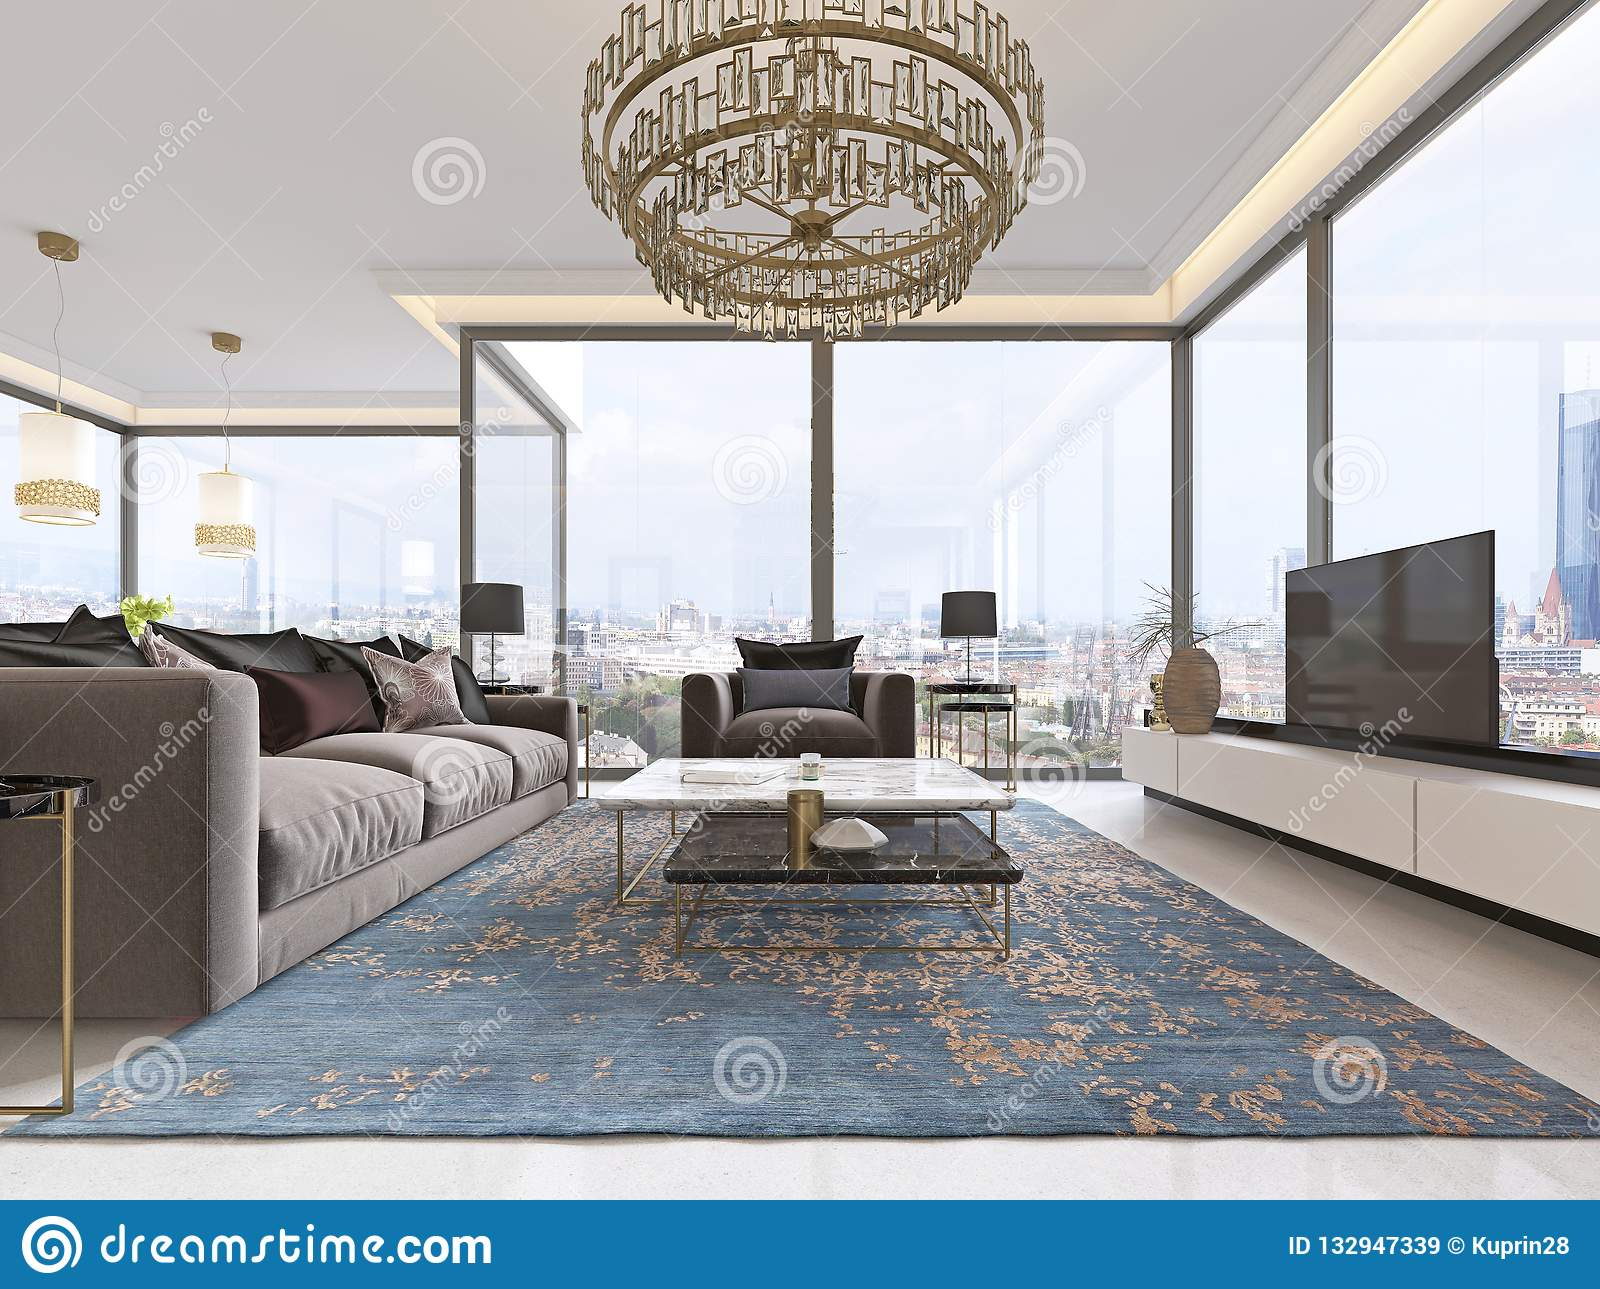 Luxurious Interior Of Living Room Contemporary Style With TV Unit Sofa Armchairs Coffee Table And Dining Kitchen 3D Rendering